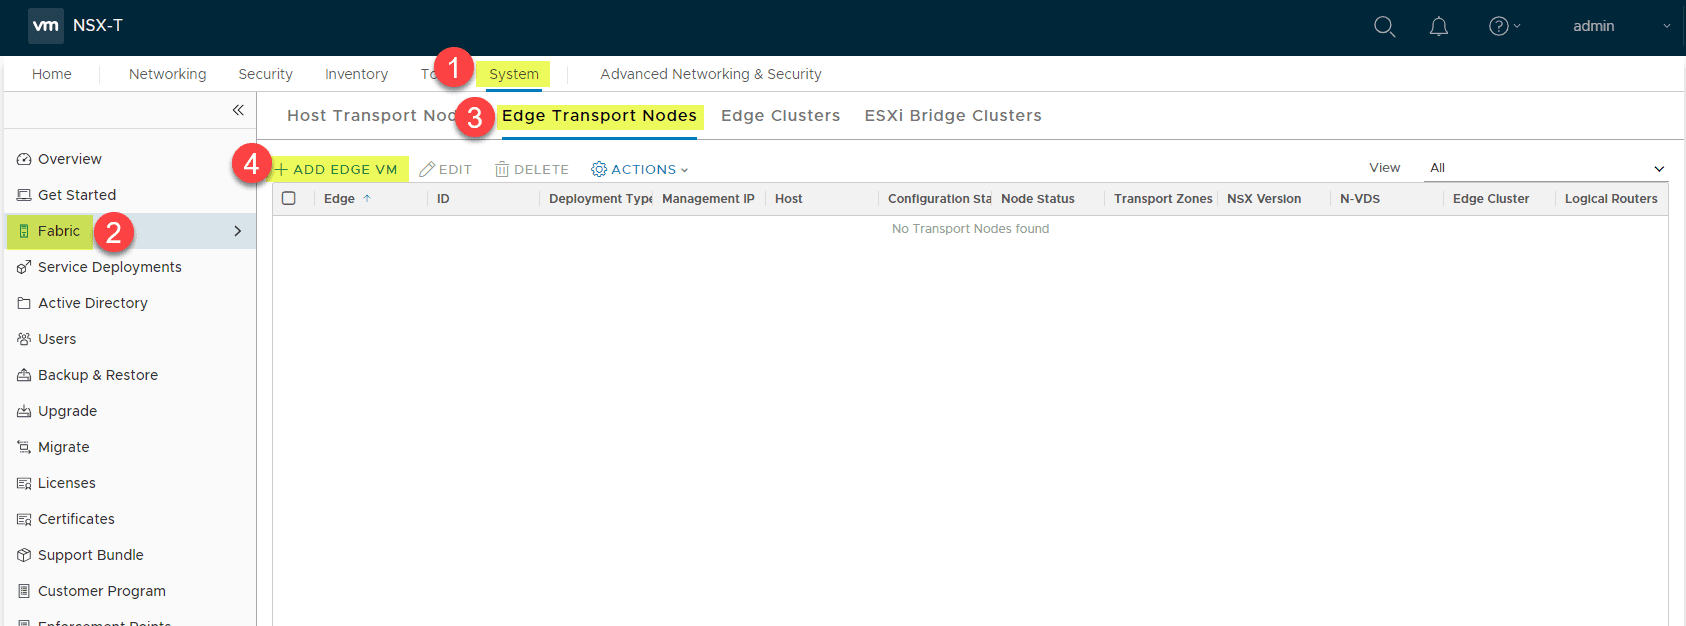 Deploying-the-Edge-Transport-VM-in-the-System-Fabric-configuration Deploy VMware NSX-T 2.4 Edge Transport Appliance VM